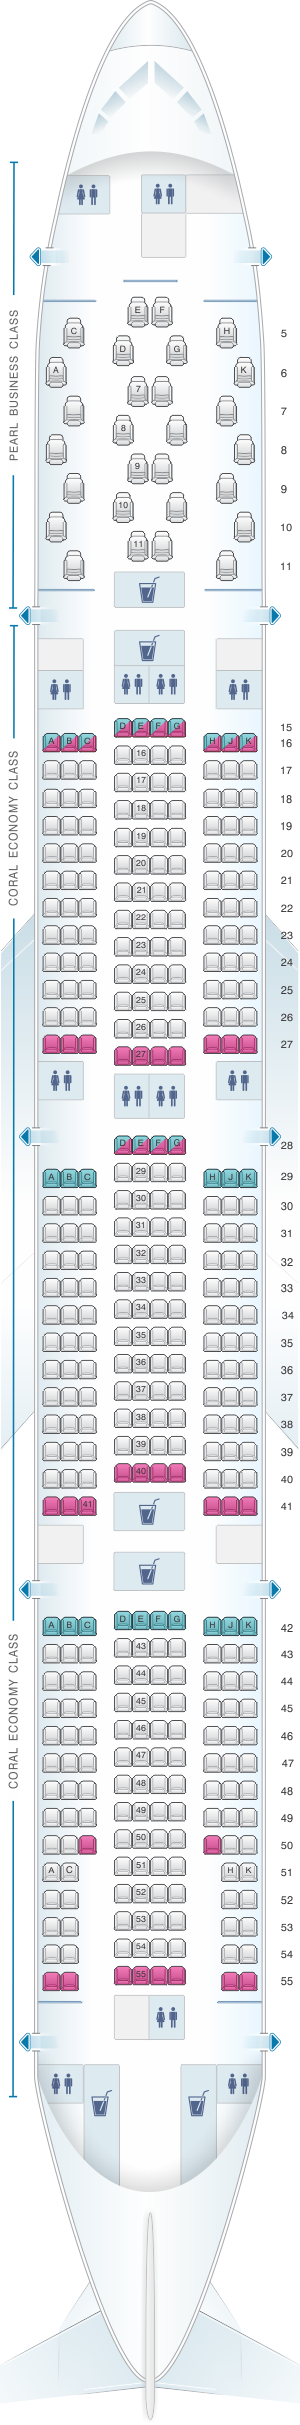 Seat map for Etihad Airways Boeing B777 300ER 2 class V1